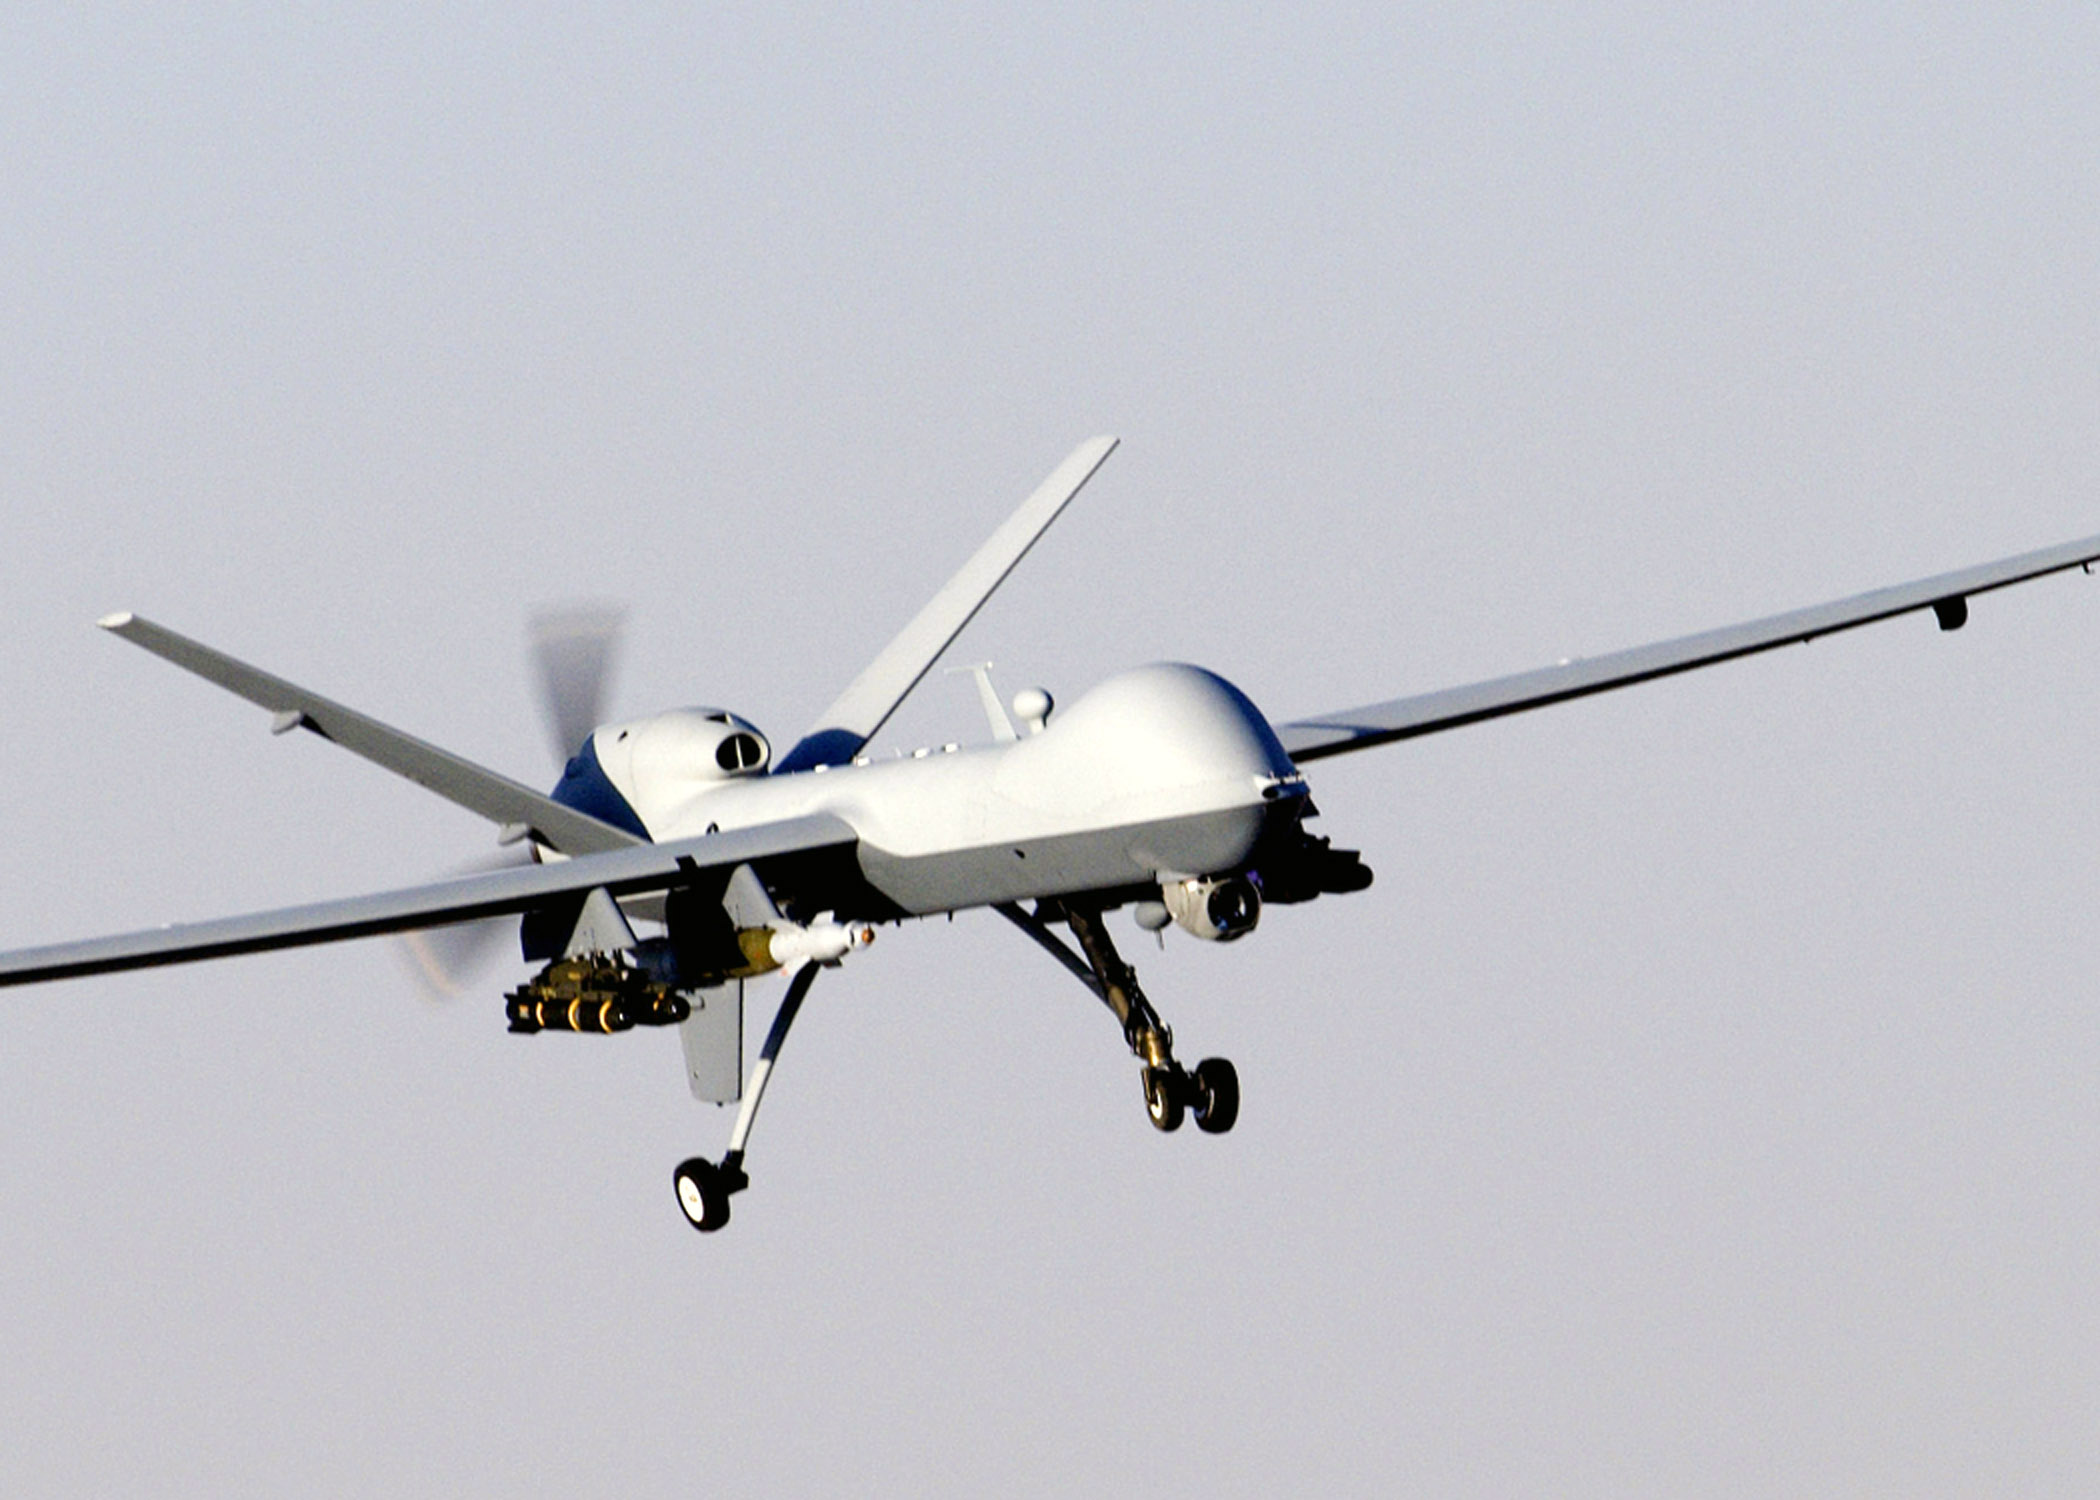 A MQ-9 Reaper unmanned aerial vehicle prepares to land after a mission in support of Operation Enduring Freedom in Afghanistan. The Reaper has the ability to carry both precision-guided bombs and air-to-ground missiles. (U.S. Air Force photo/Staff Sgt. Brian Ferguson)